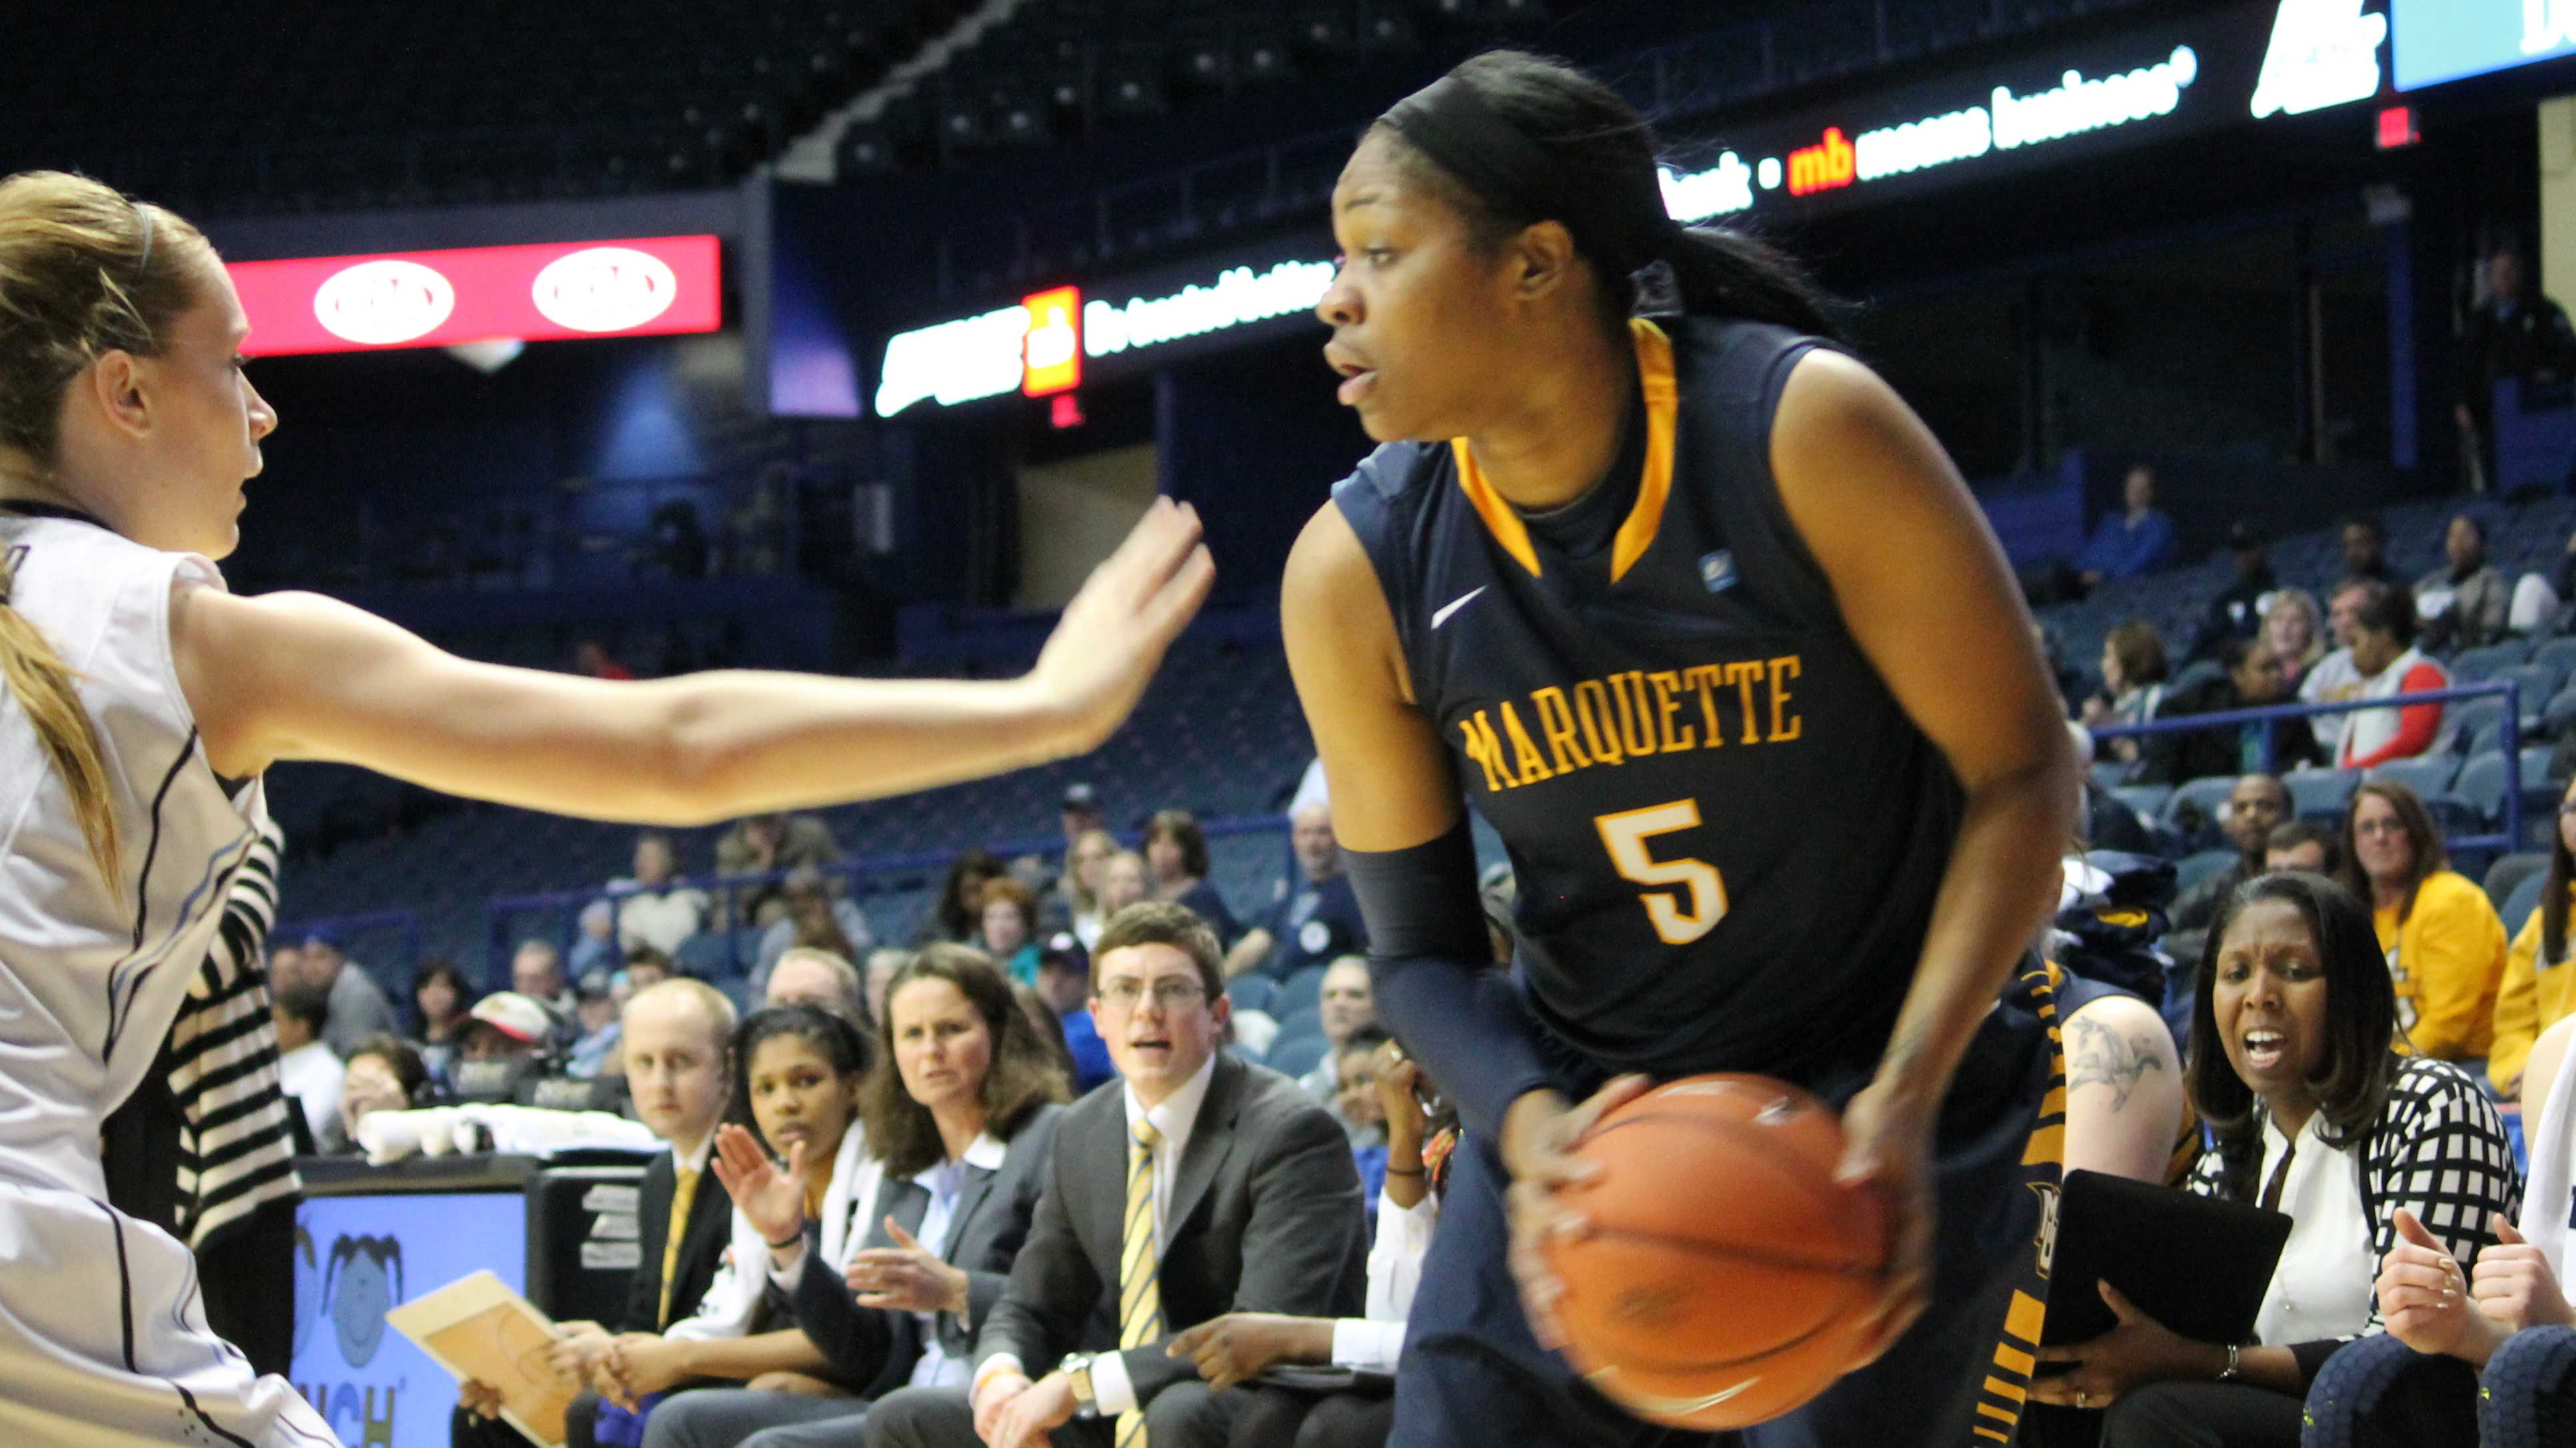 Senior guard Katie Young during the second half of No. 5 Marquette's BIG EAST Quarterfinals matchup with No. 4 Villanova on 3/9/14. (Photo by Francesca Reed / francesca.reed@marquette.edu)